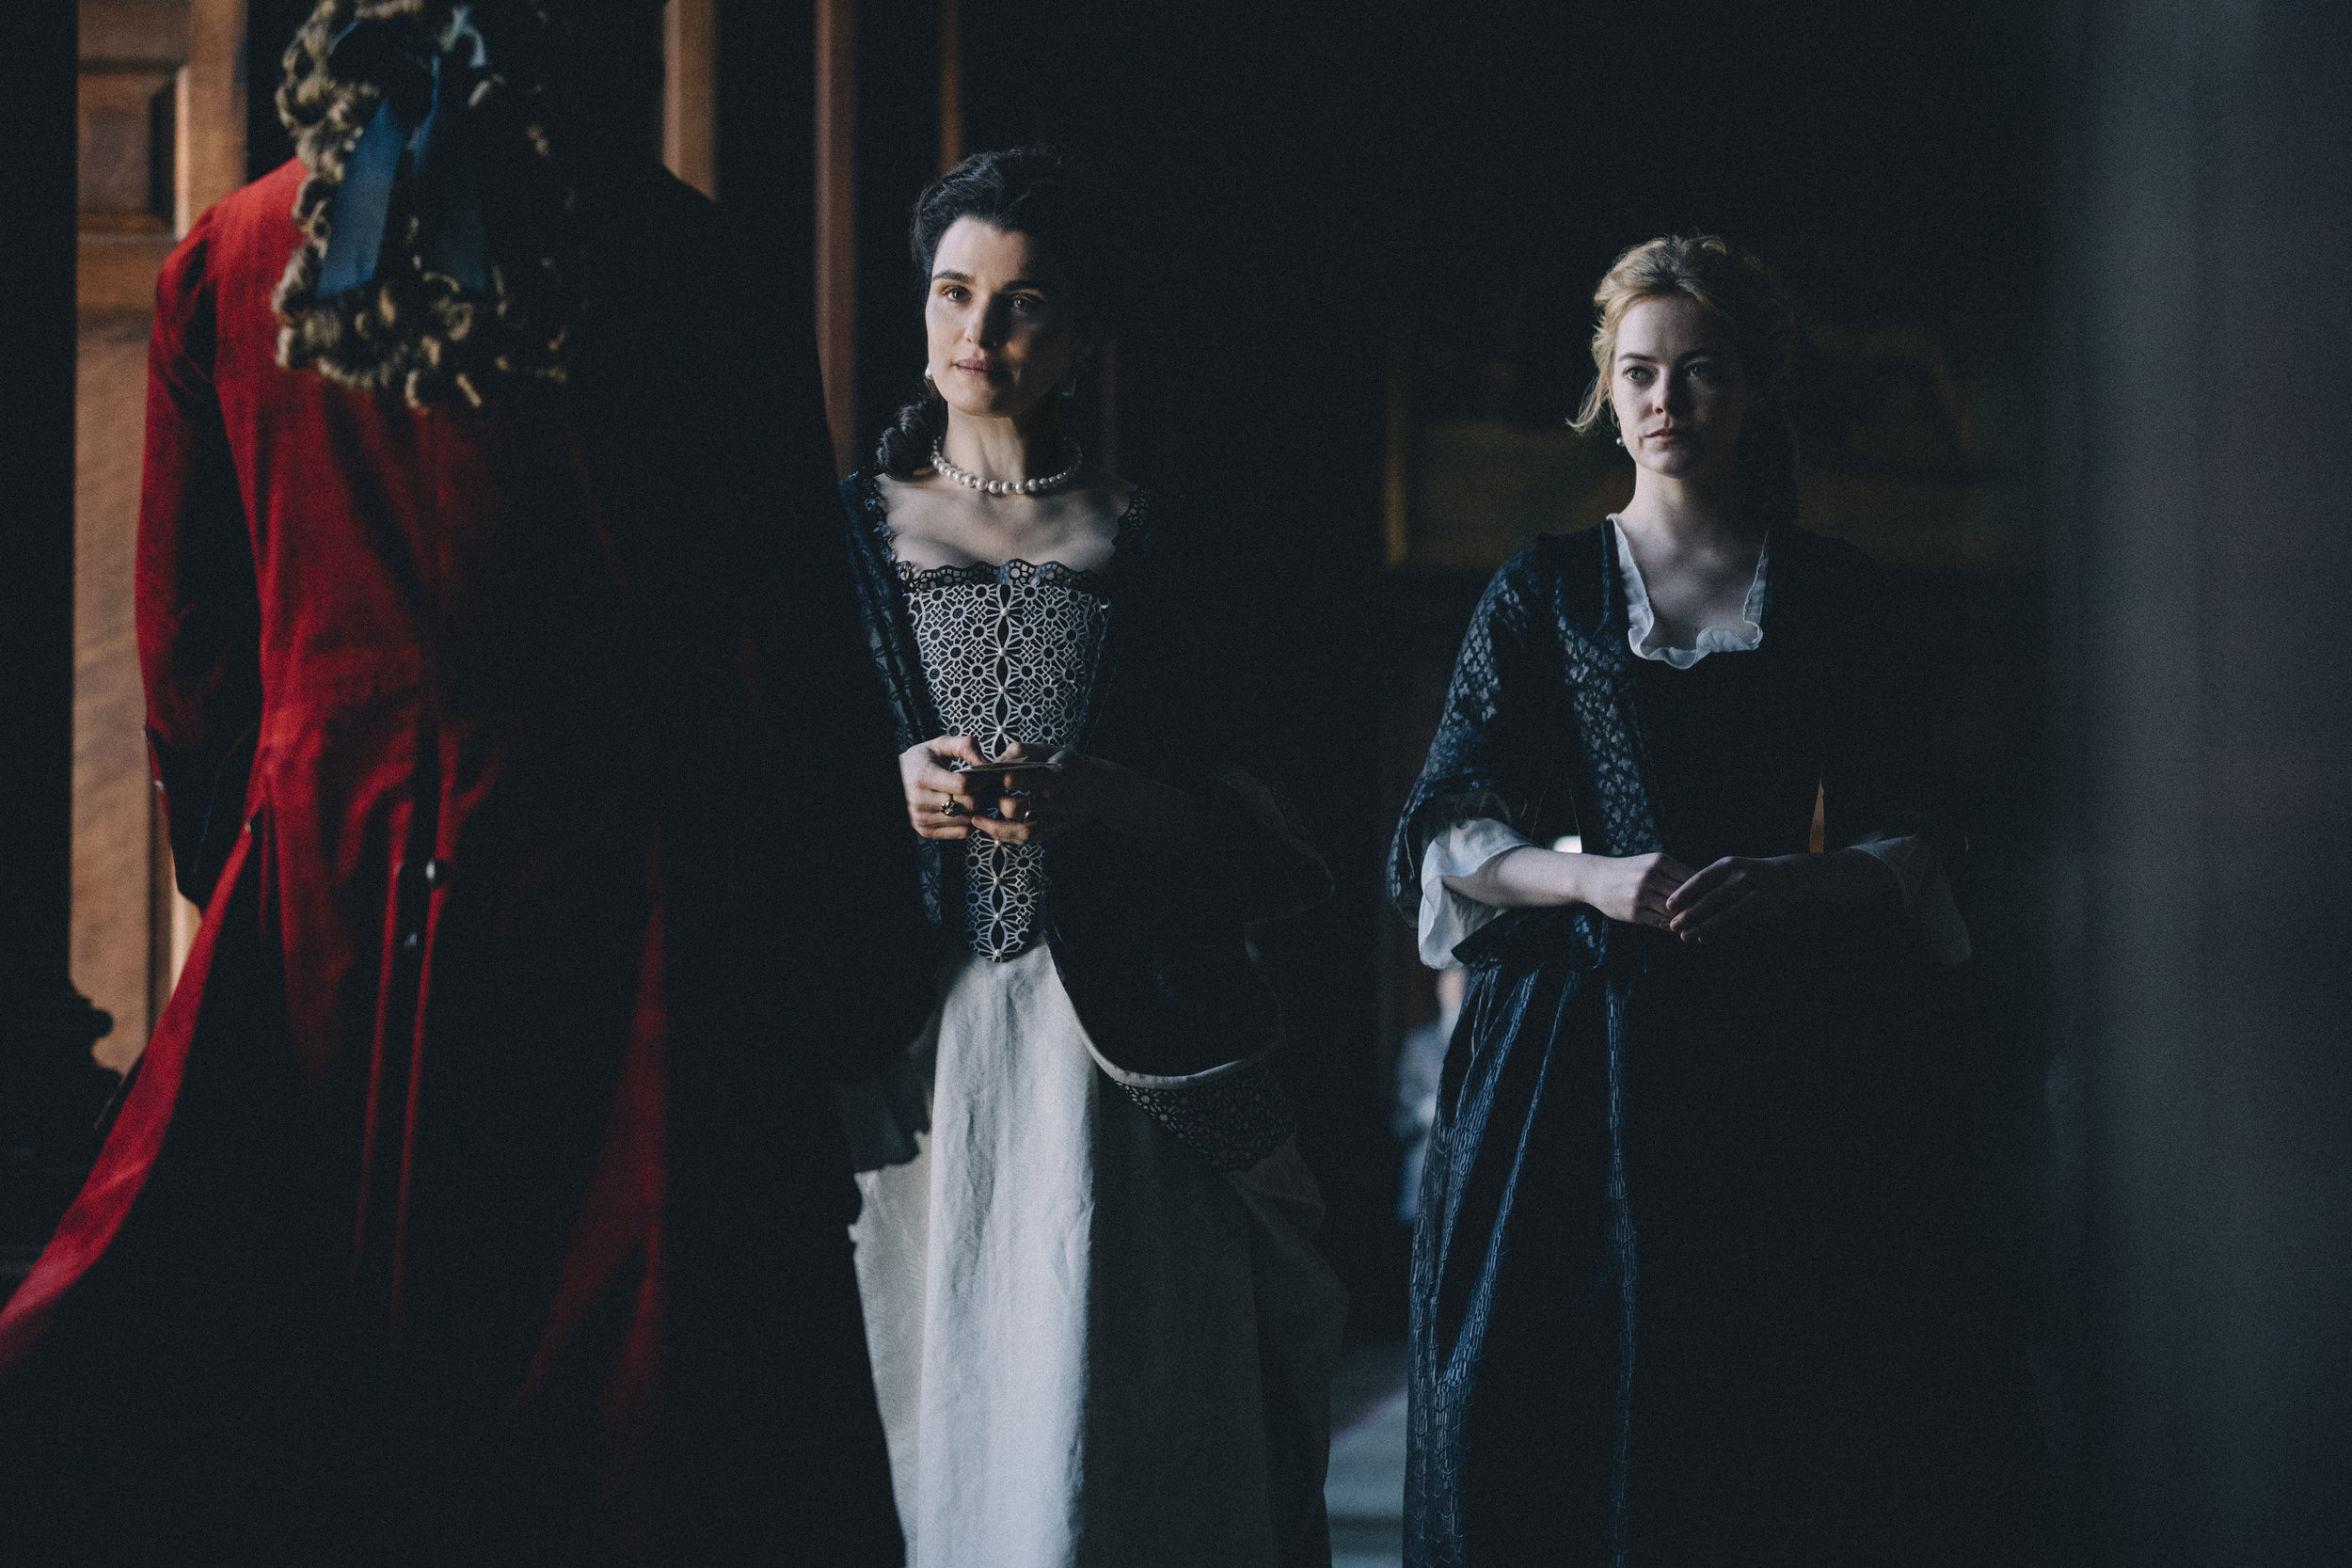 "The Duchess of Marlborough, Sarah Churchill (Rachel Weisz, center) and her cousin, lady-in-waiting Abigail Hill (Emma Stone, right) greet the handsome Samuel Mesham (Joe Alwyn), in a scene from ""The Favourite."" (Photo courtesy Fox Searchlight Pictures)"